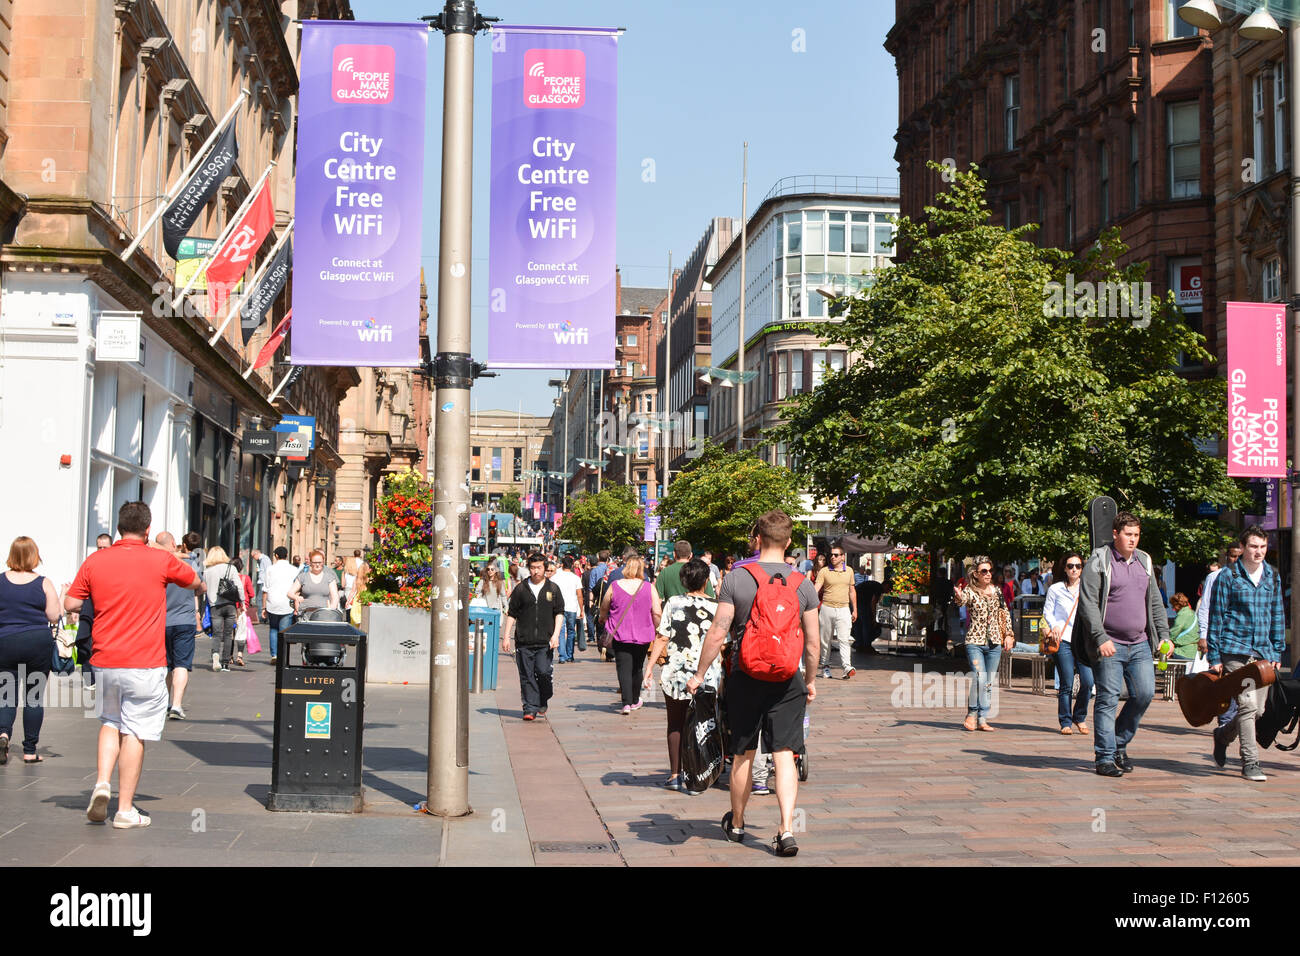 Shoppers et wifi gratuit dans Buchanan Street, Glasgow, Royaume-Uni Photo Stock